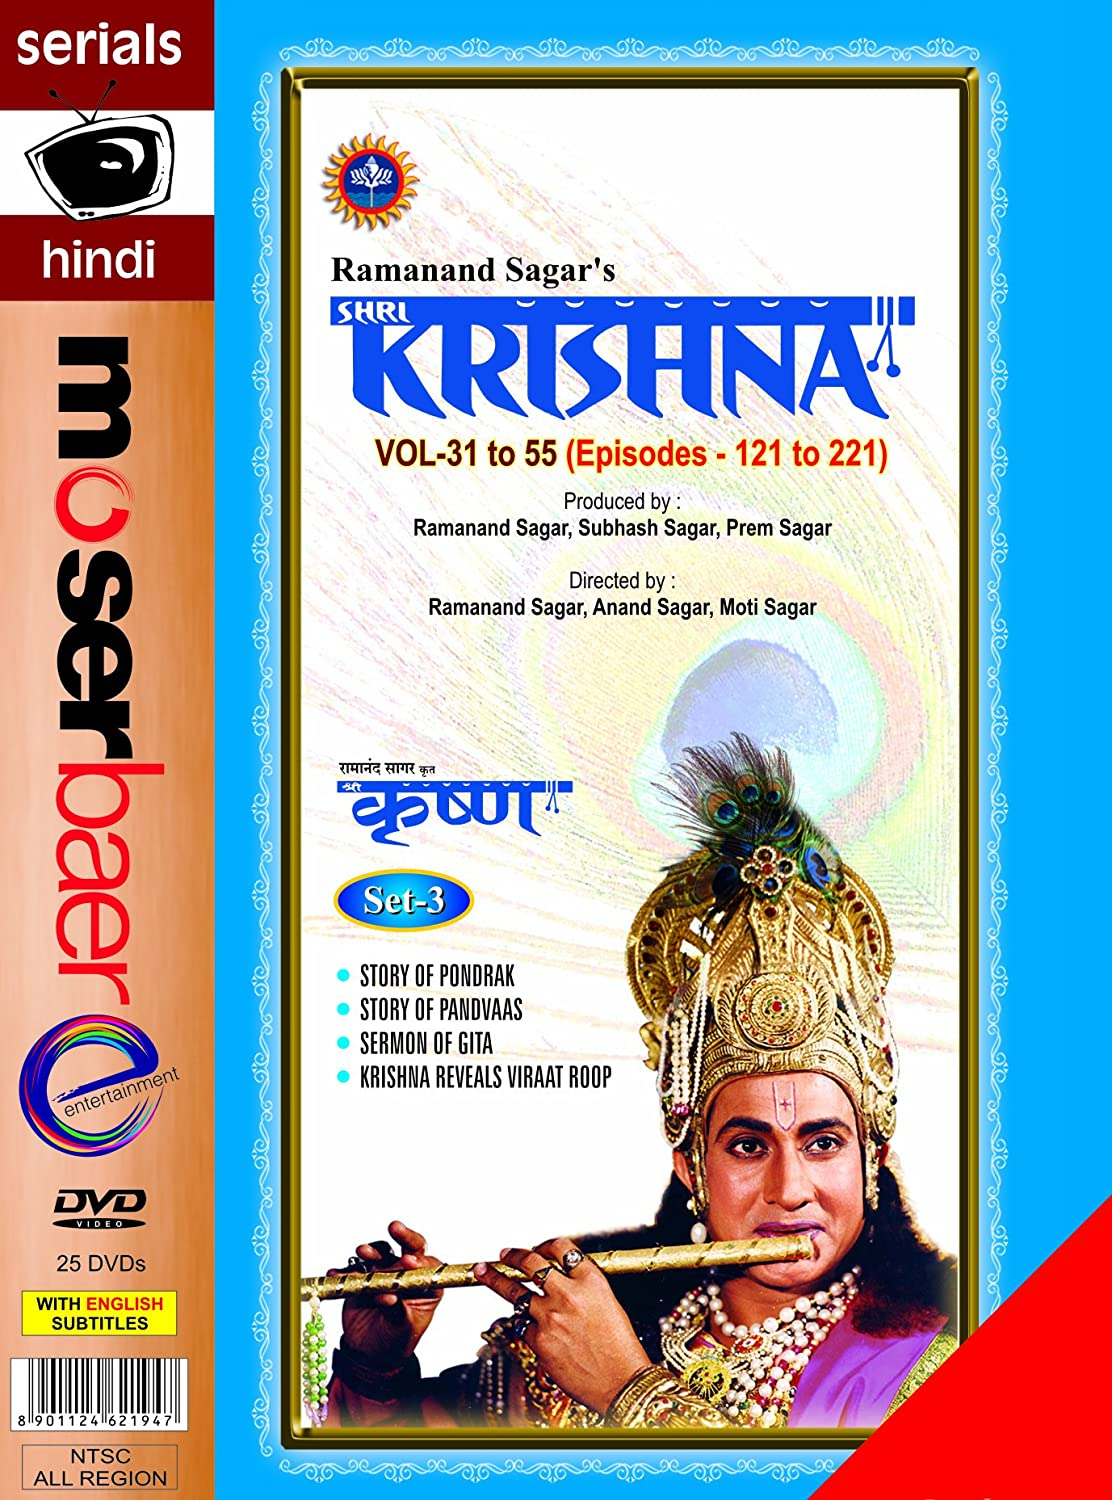 Buy Krishna Set 3 Volume 31 To 55 Dvd Blu Ray Online Lingerie Favorit Xo At Best Prices In India Movies Tv Shows